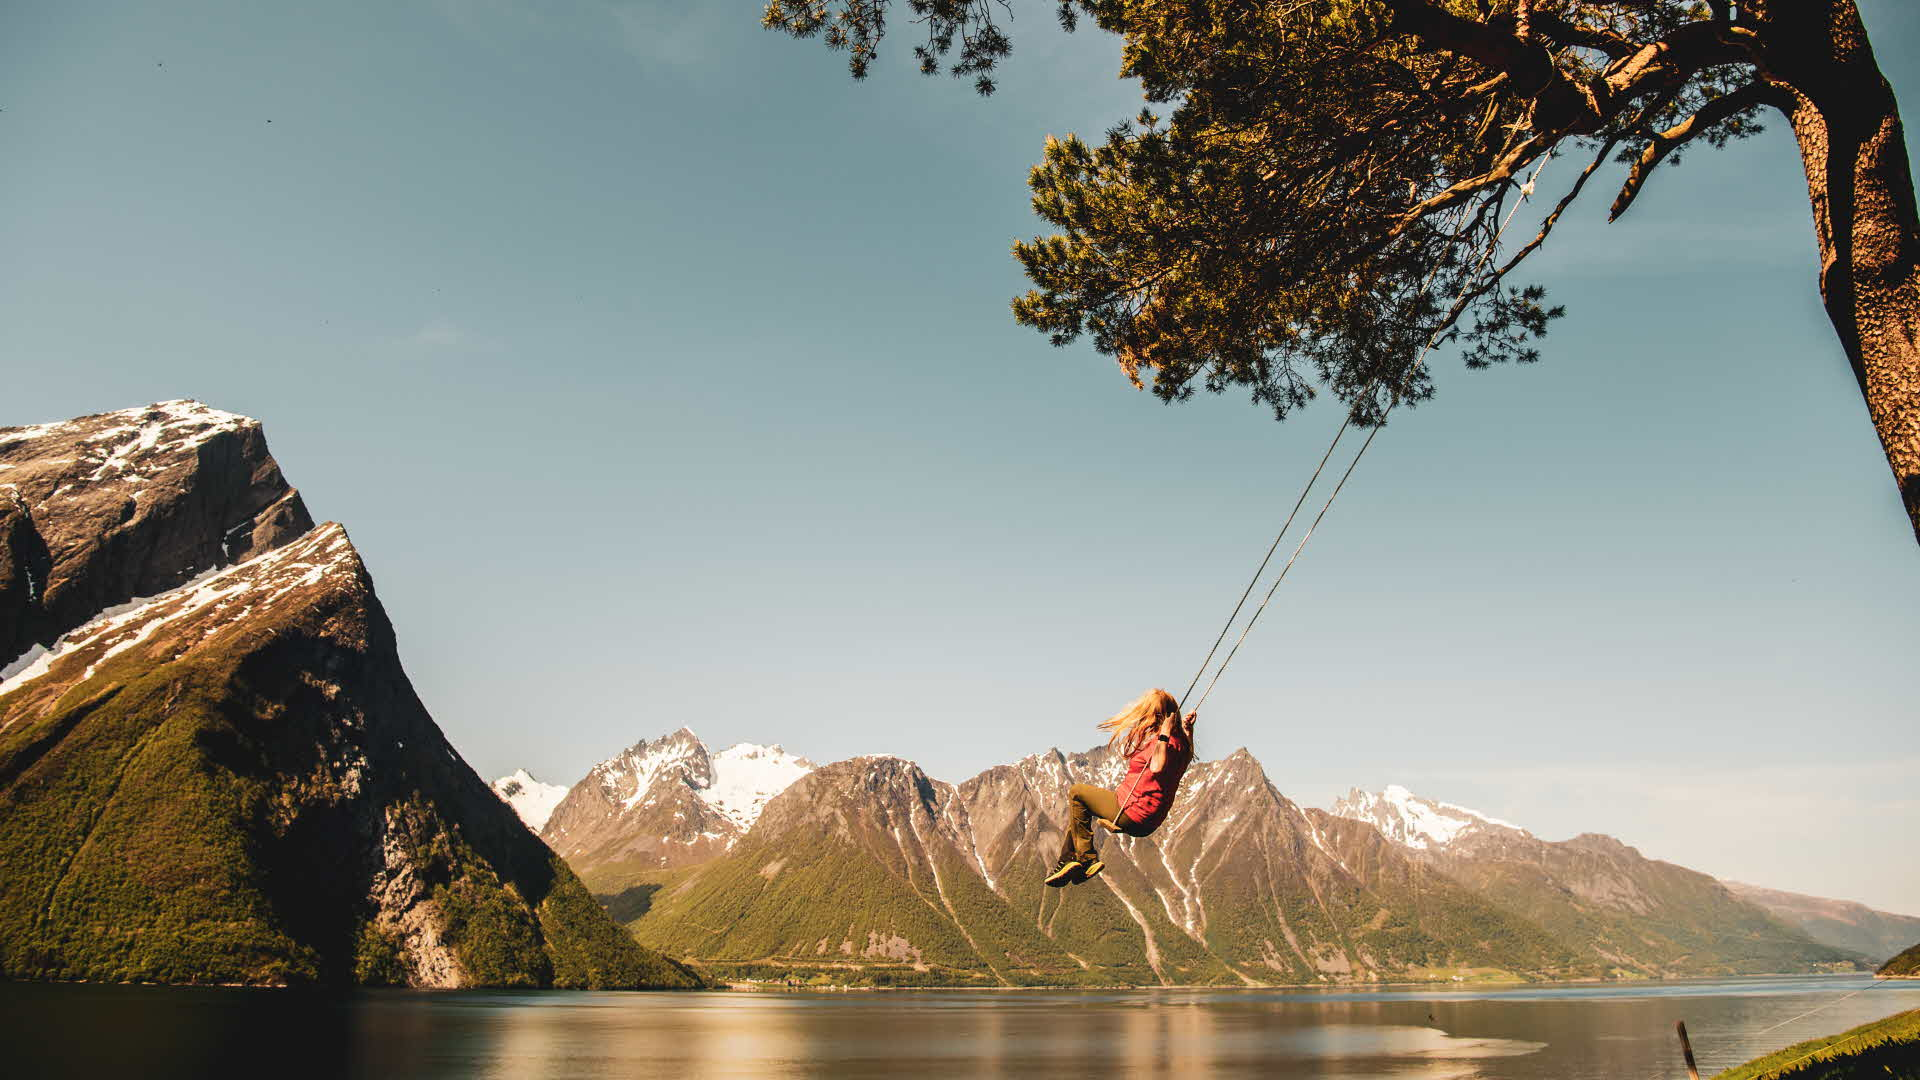 Woman enjoying tree-swing at Trandal farm by Hjorundfjord. Dramatic alpine mountains with snow-capped mountains